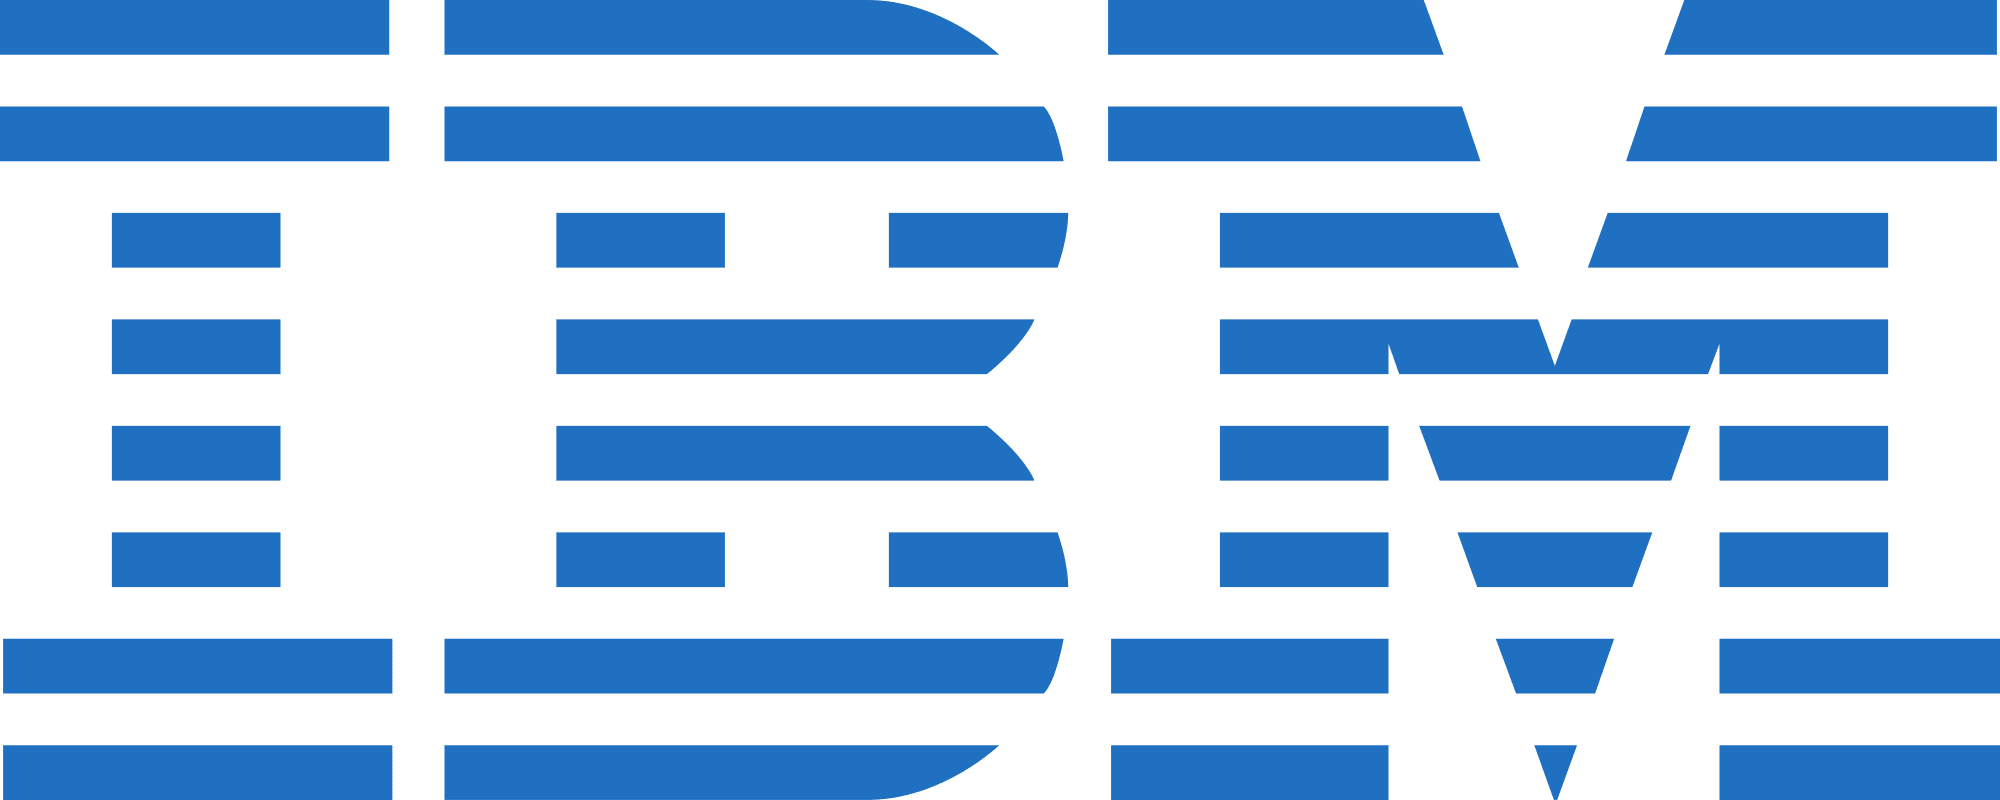 ibm logo official high resolution png transparency City Medium typeface 1967 International Business Machines Corporation